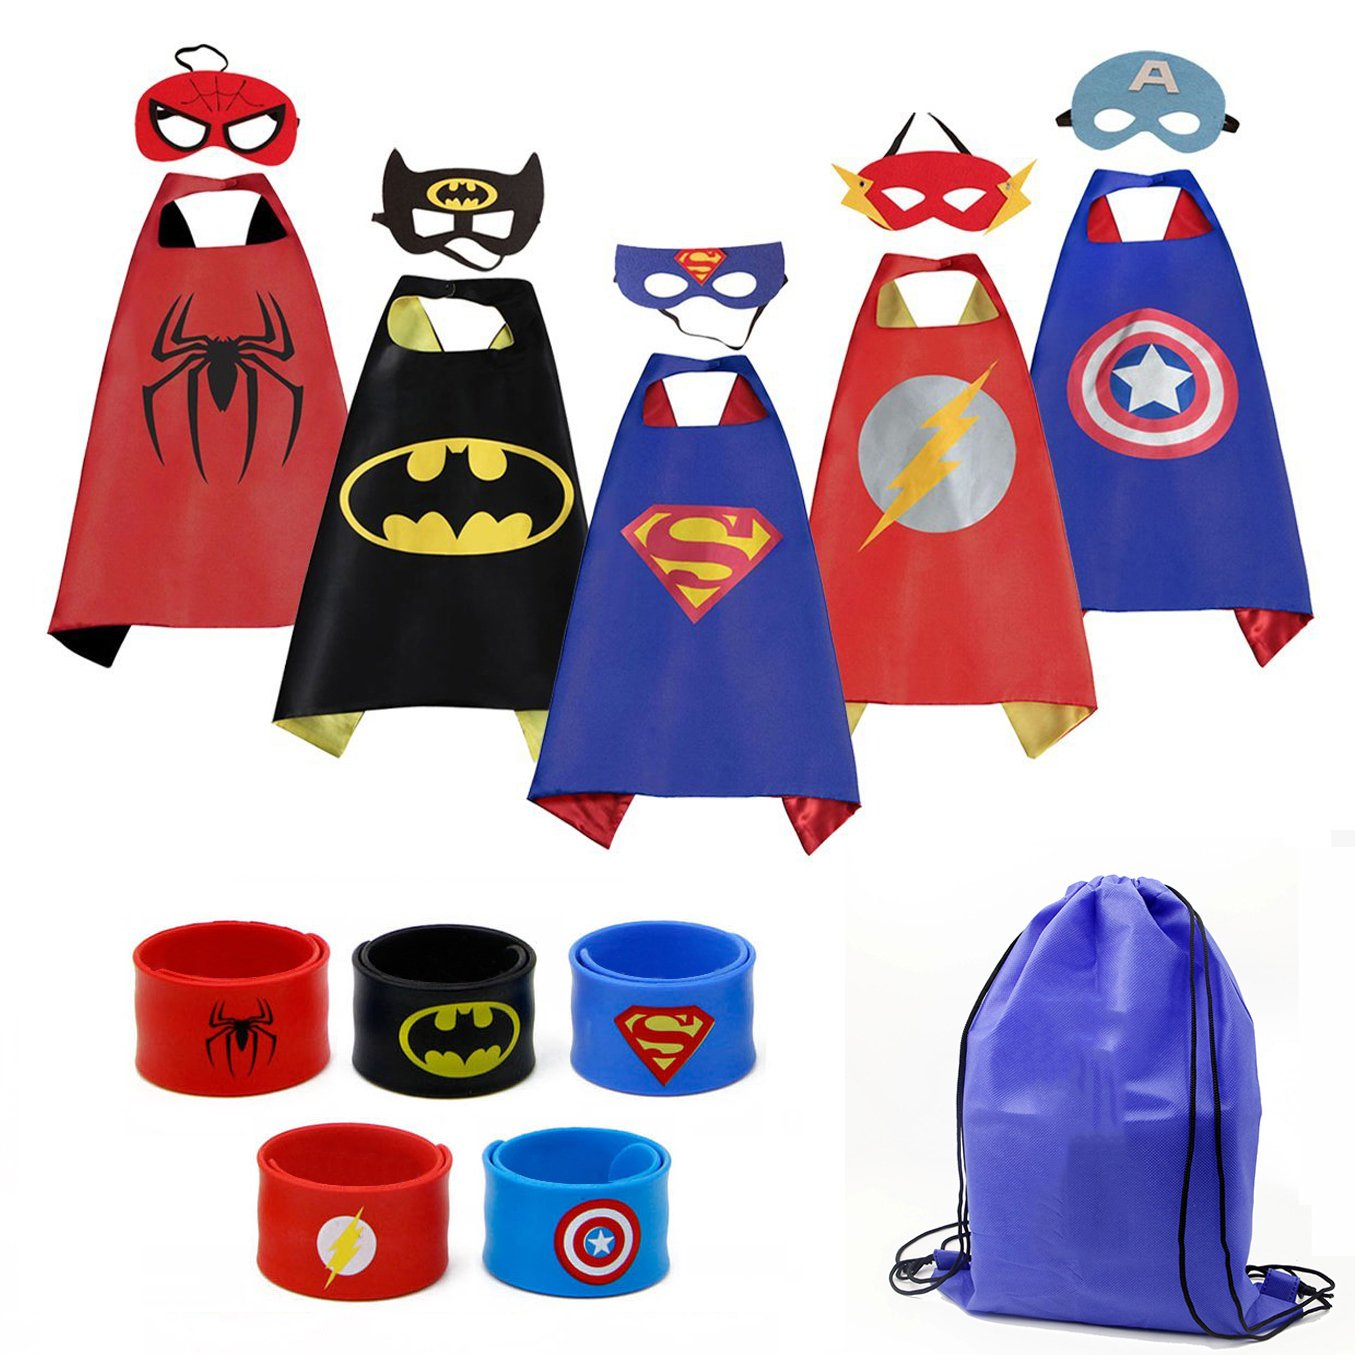 Mizzuco Cartoon Dress up Costumes Satin Capes with Felt Masks,Slap Bracelets and Exclusive Bag for Boys (5pcs Costume) by Mizzuco